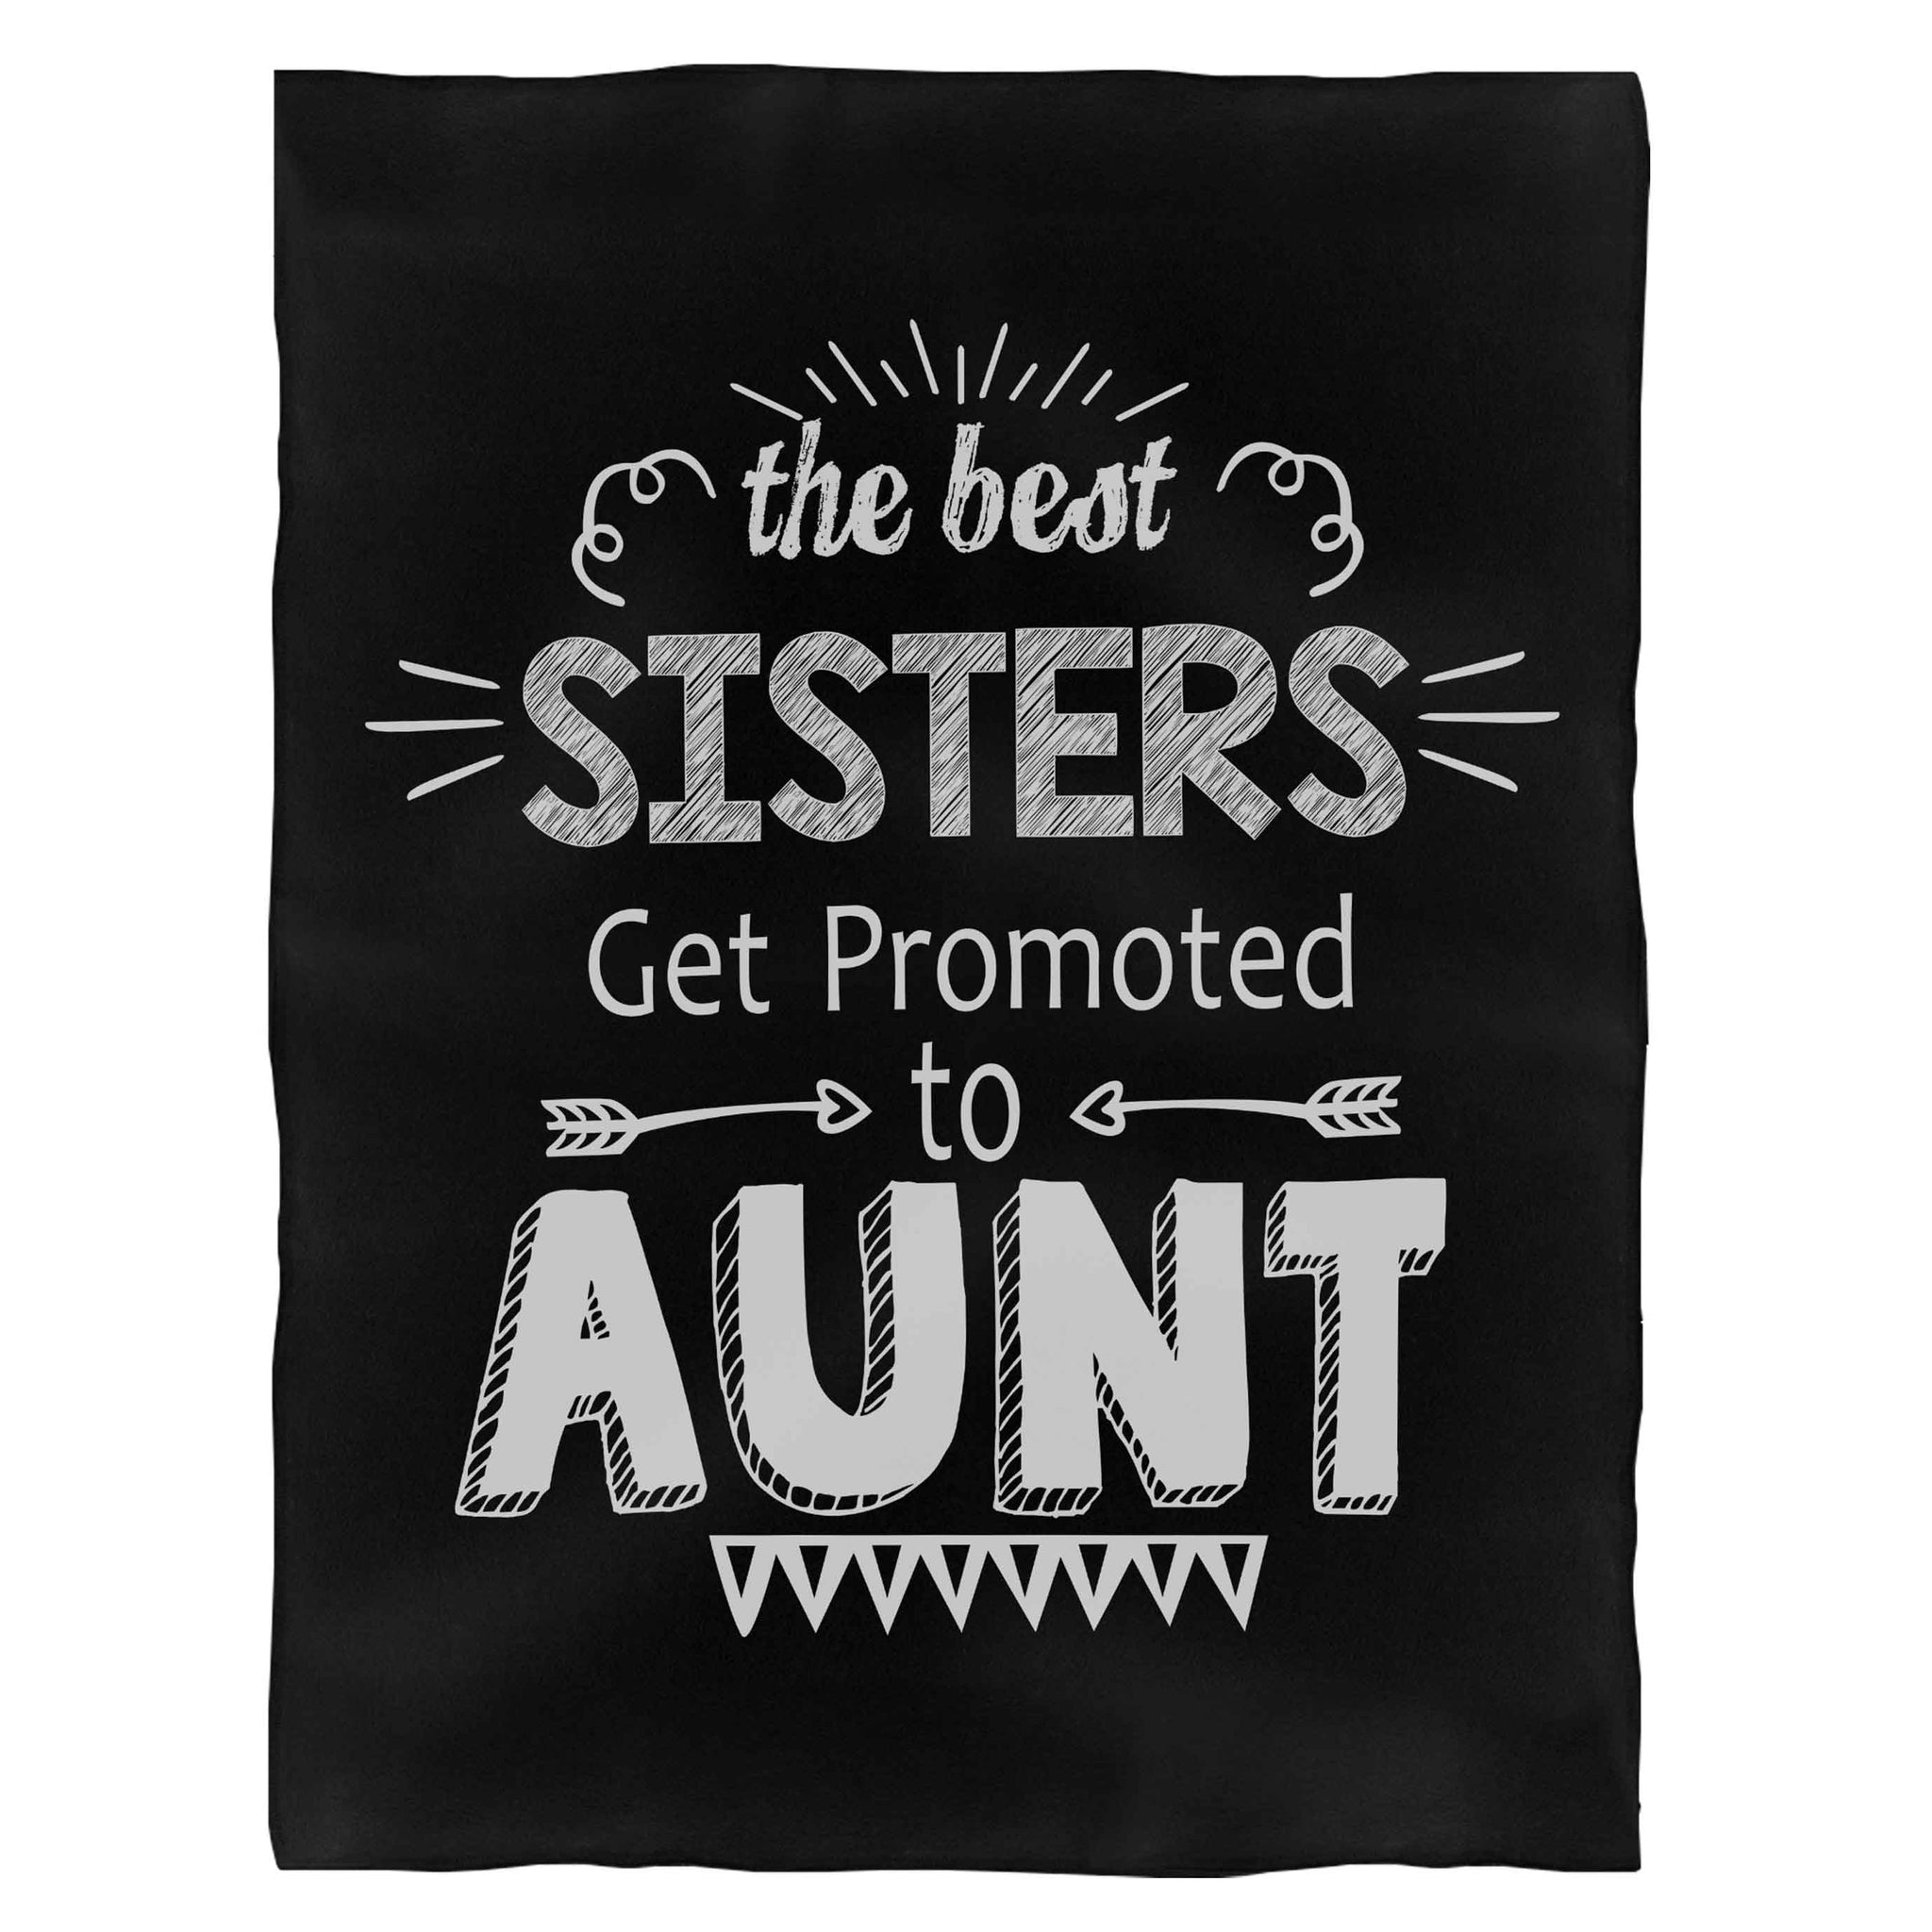 The Best Sisters Get Promoted To Aunt Fleece Blanket